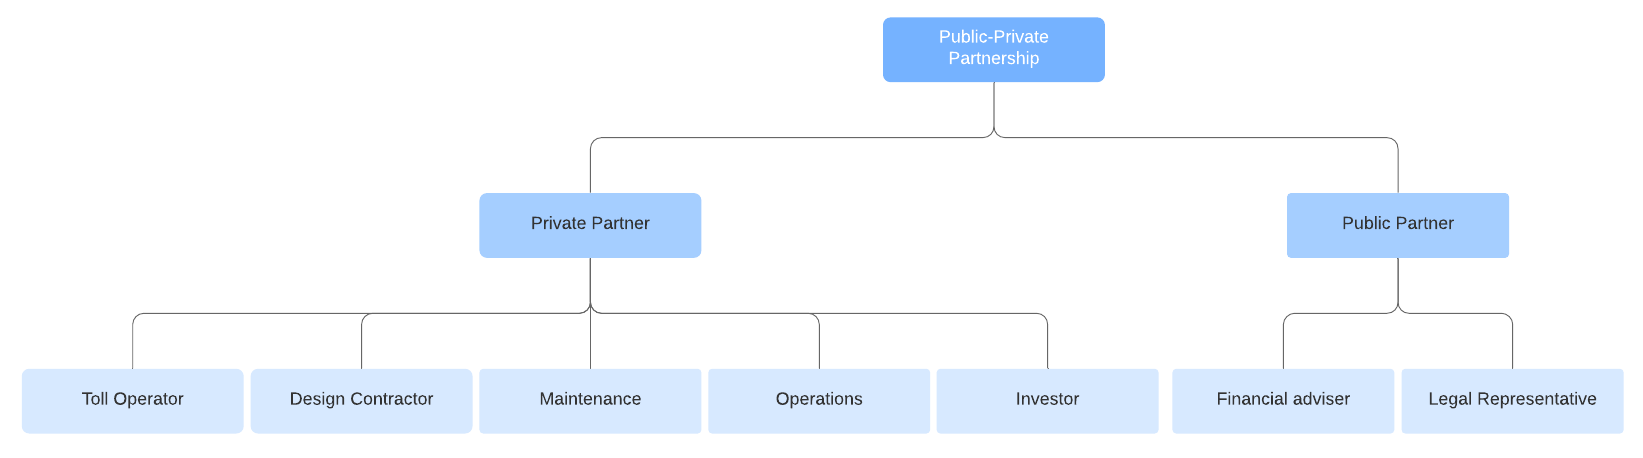 partnership org chart template